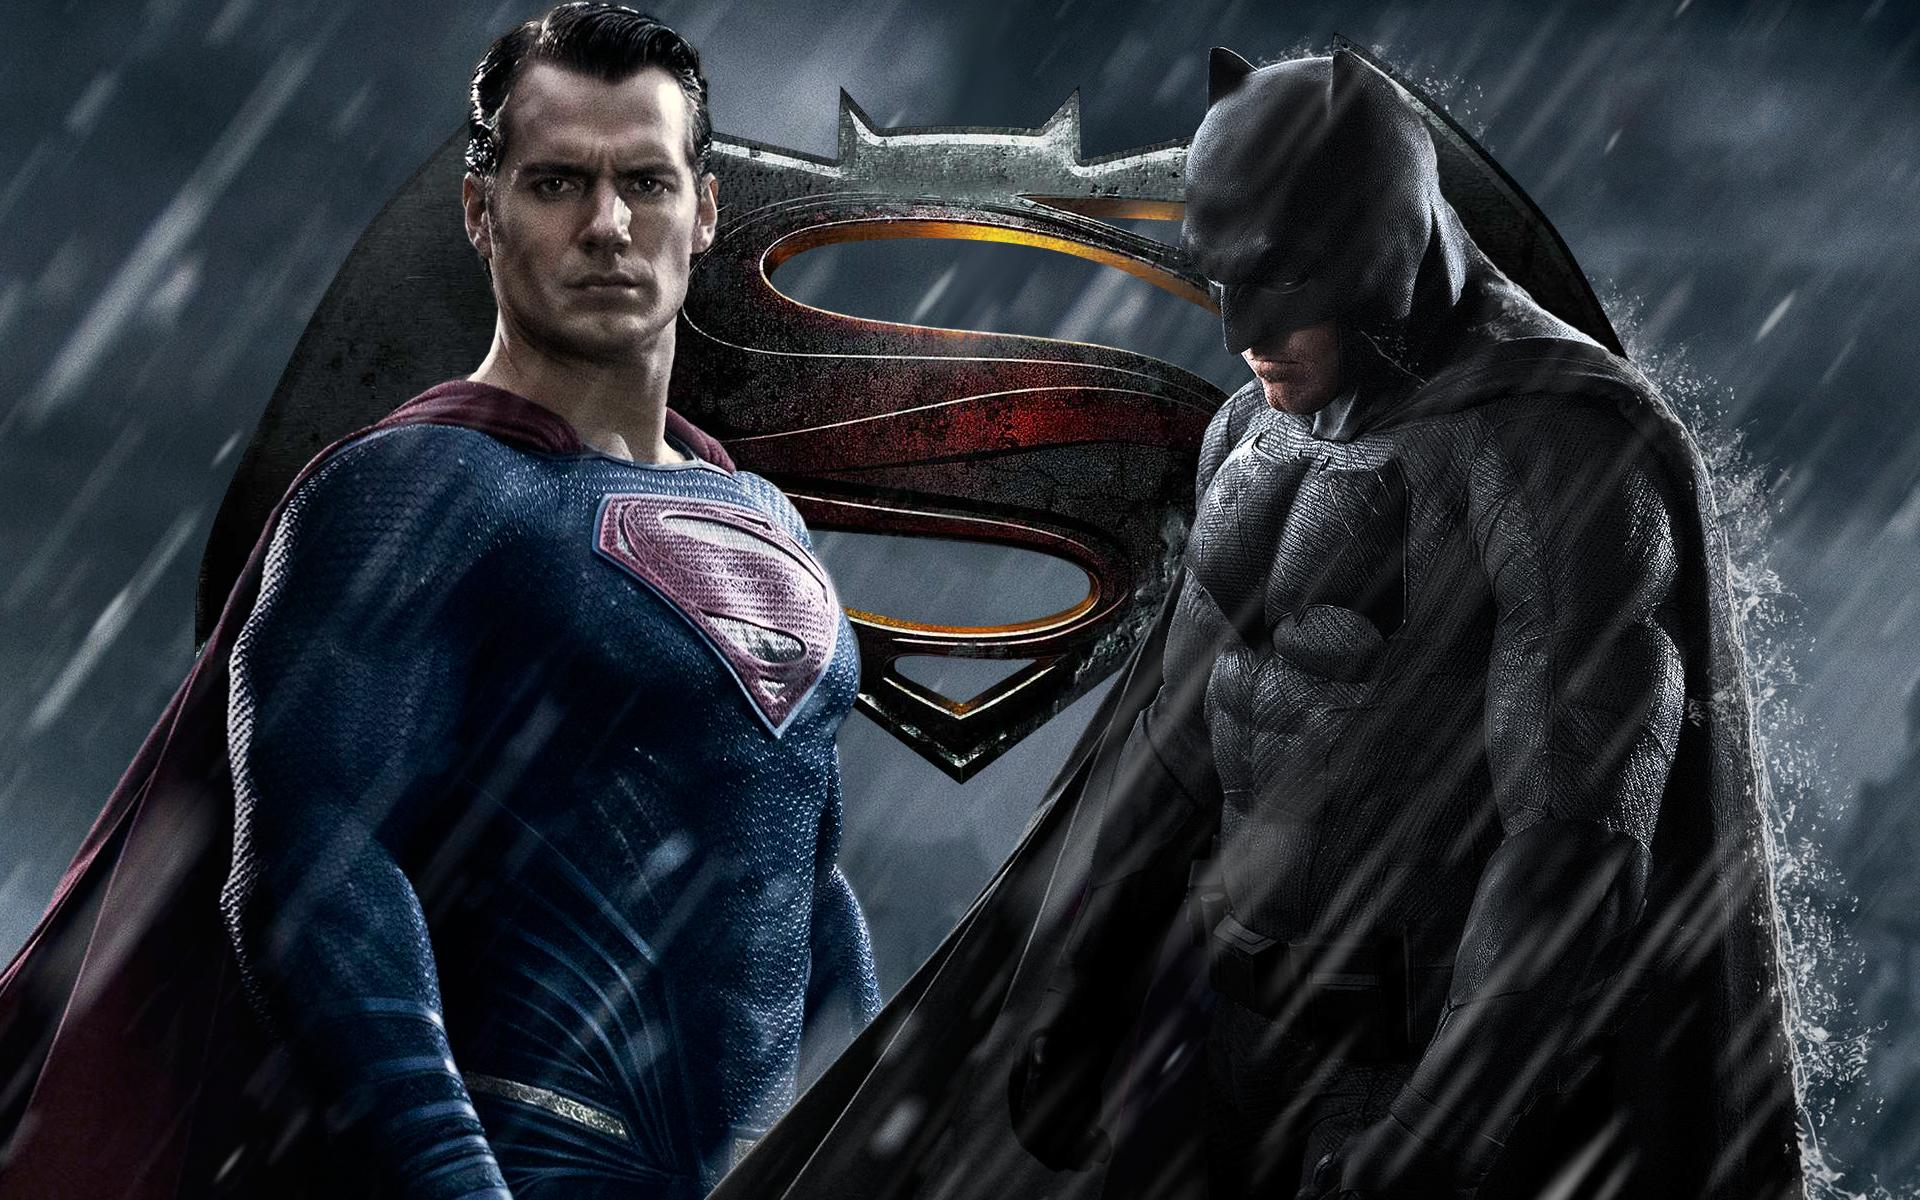 Amazing Batman Vs Superman Cover Wallpaper Picture 1650 Wallpaper with 1920x1200